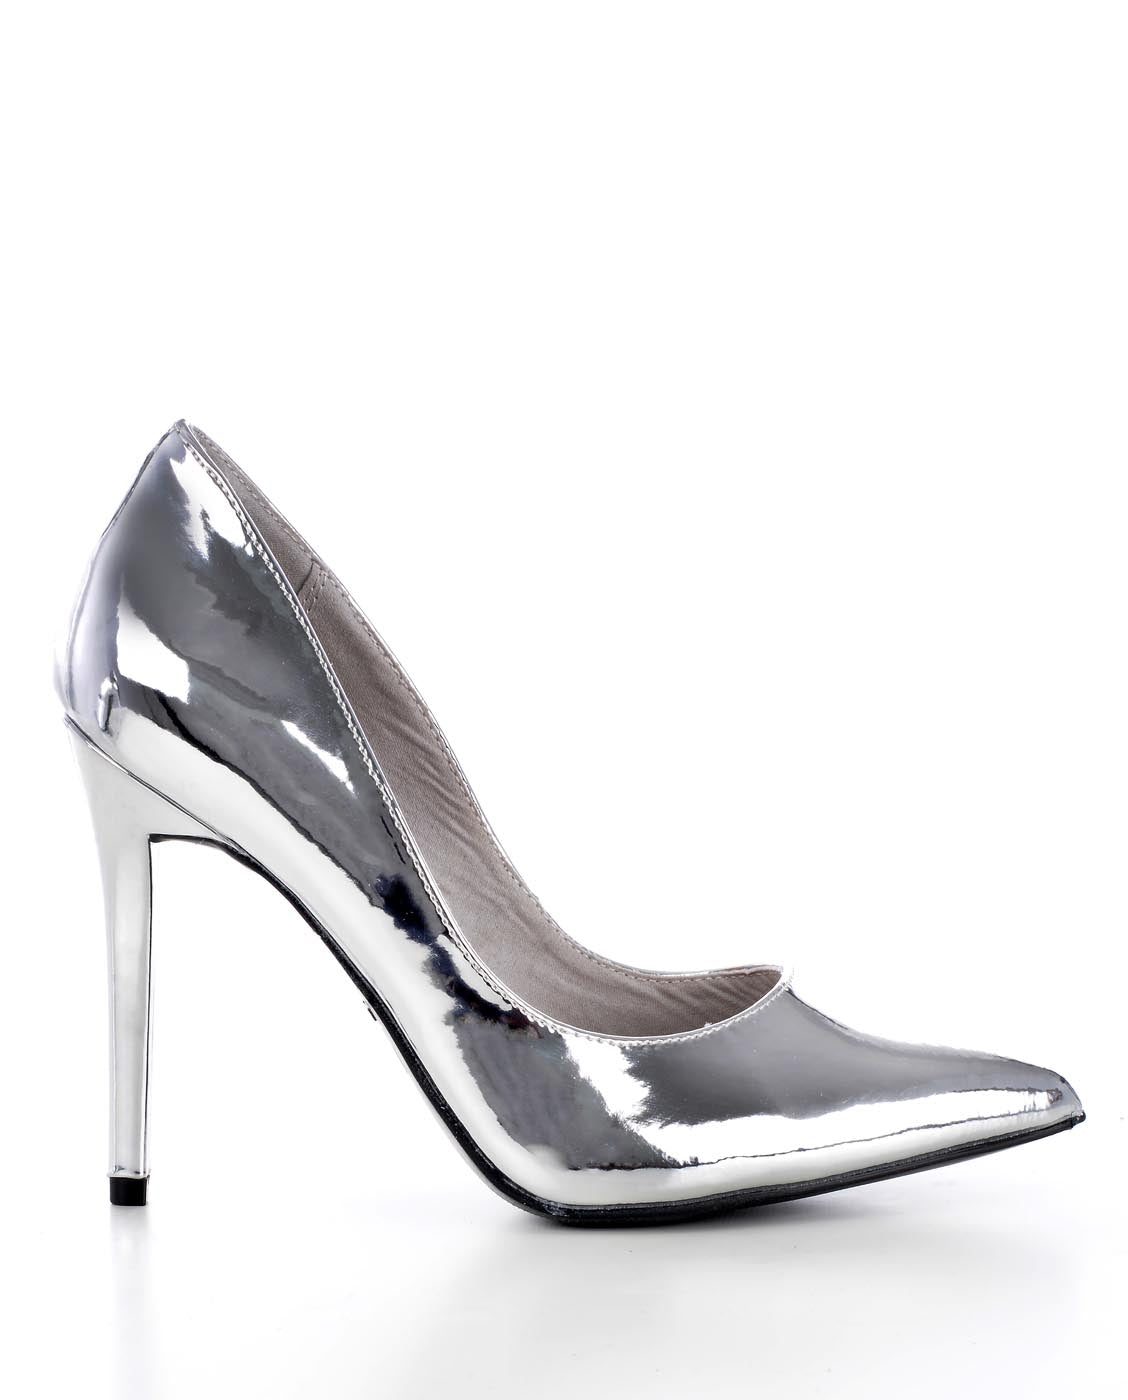 55a480728a2 Metallic Pointed Closed Toe Stiletto Heels - Fashion You Up